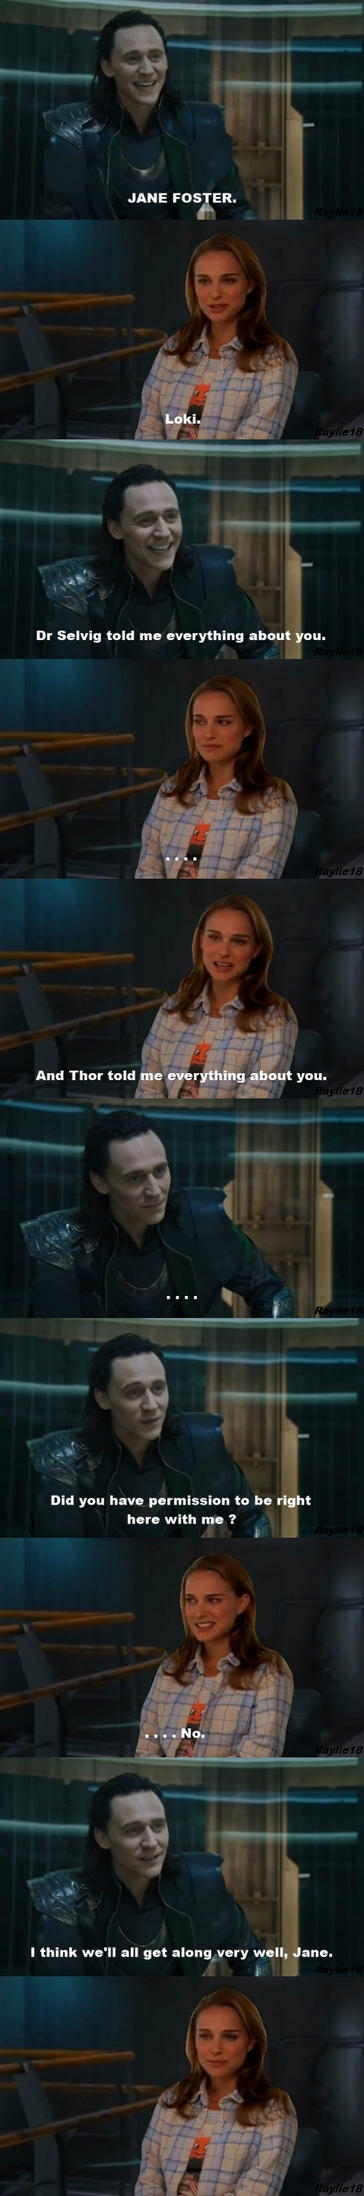 Thor: Loki /Jane-first meeting by Raylie18